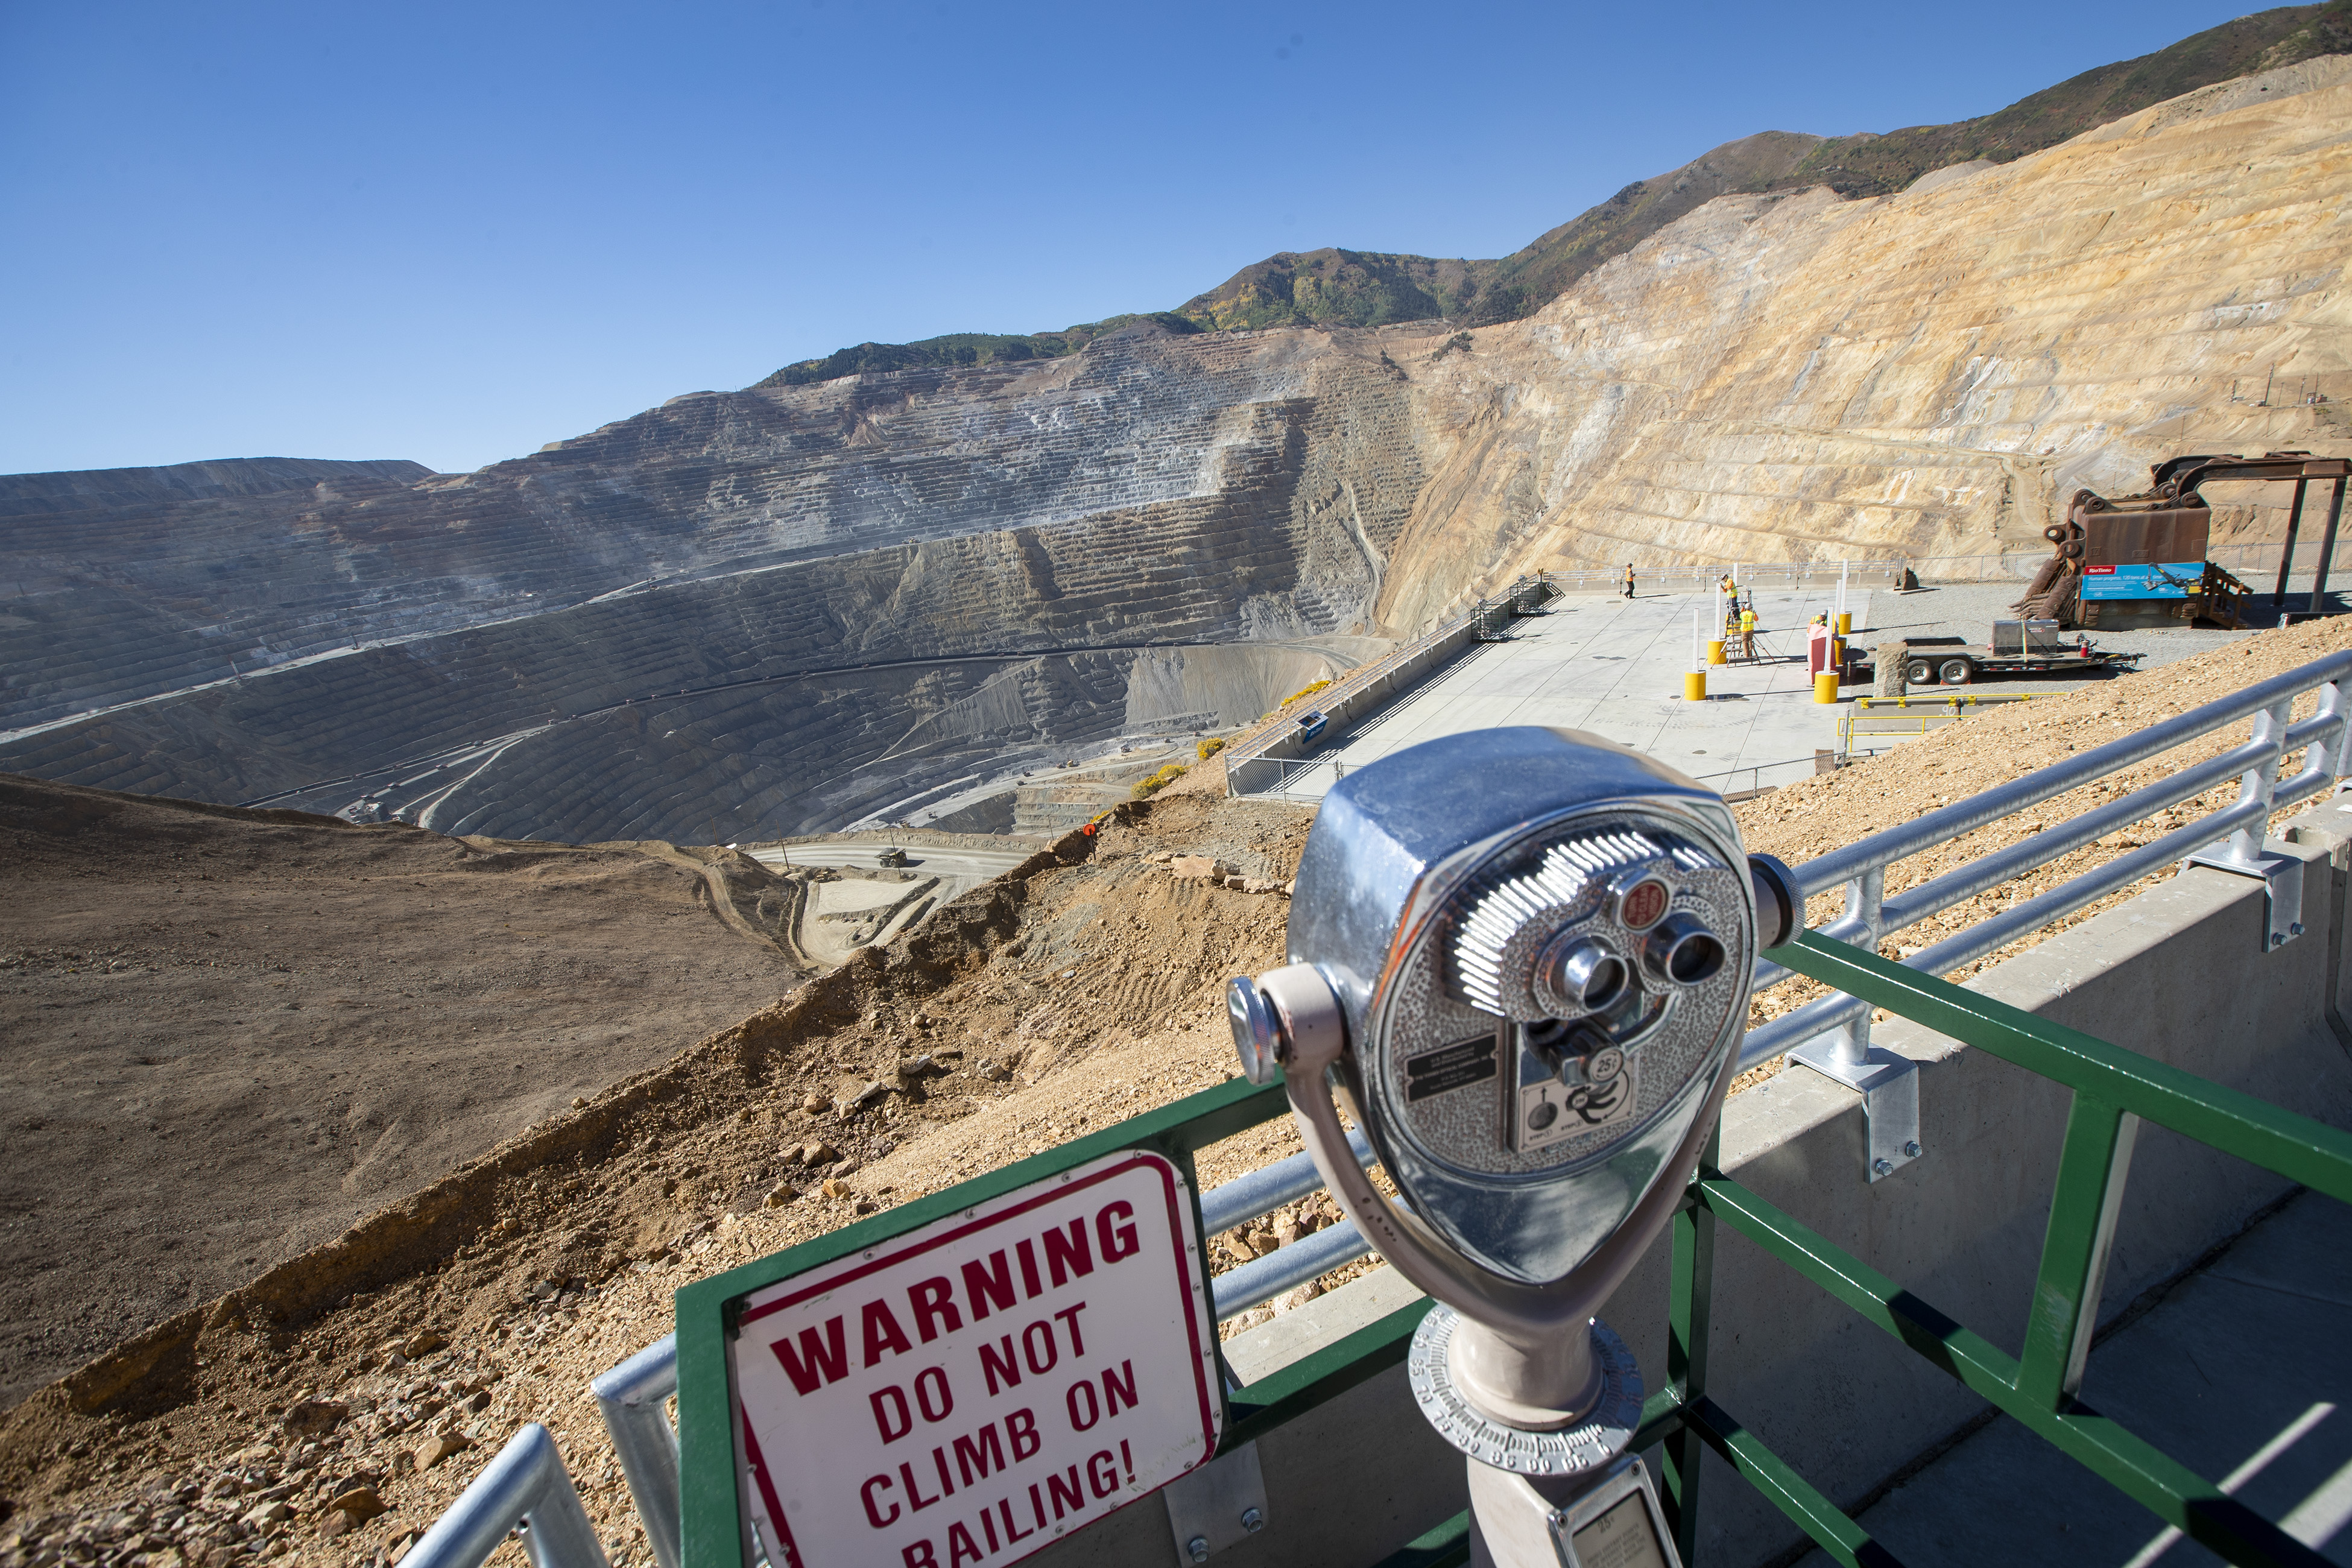 The view from the upper viewing area at Rio Tinto's Kennecott Copper as employees give a tour of the new visitors area at the Bingham Canyon Mine on Tuesday, Sept. 18, 2018. The mine's visitor sites will reopen to the public in early 2019.